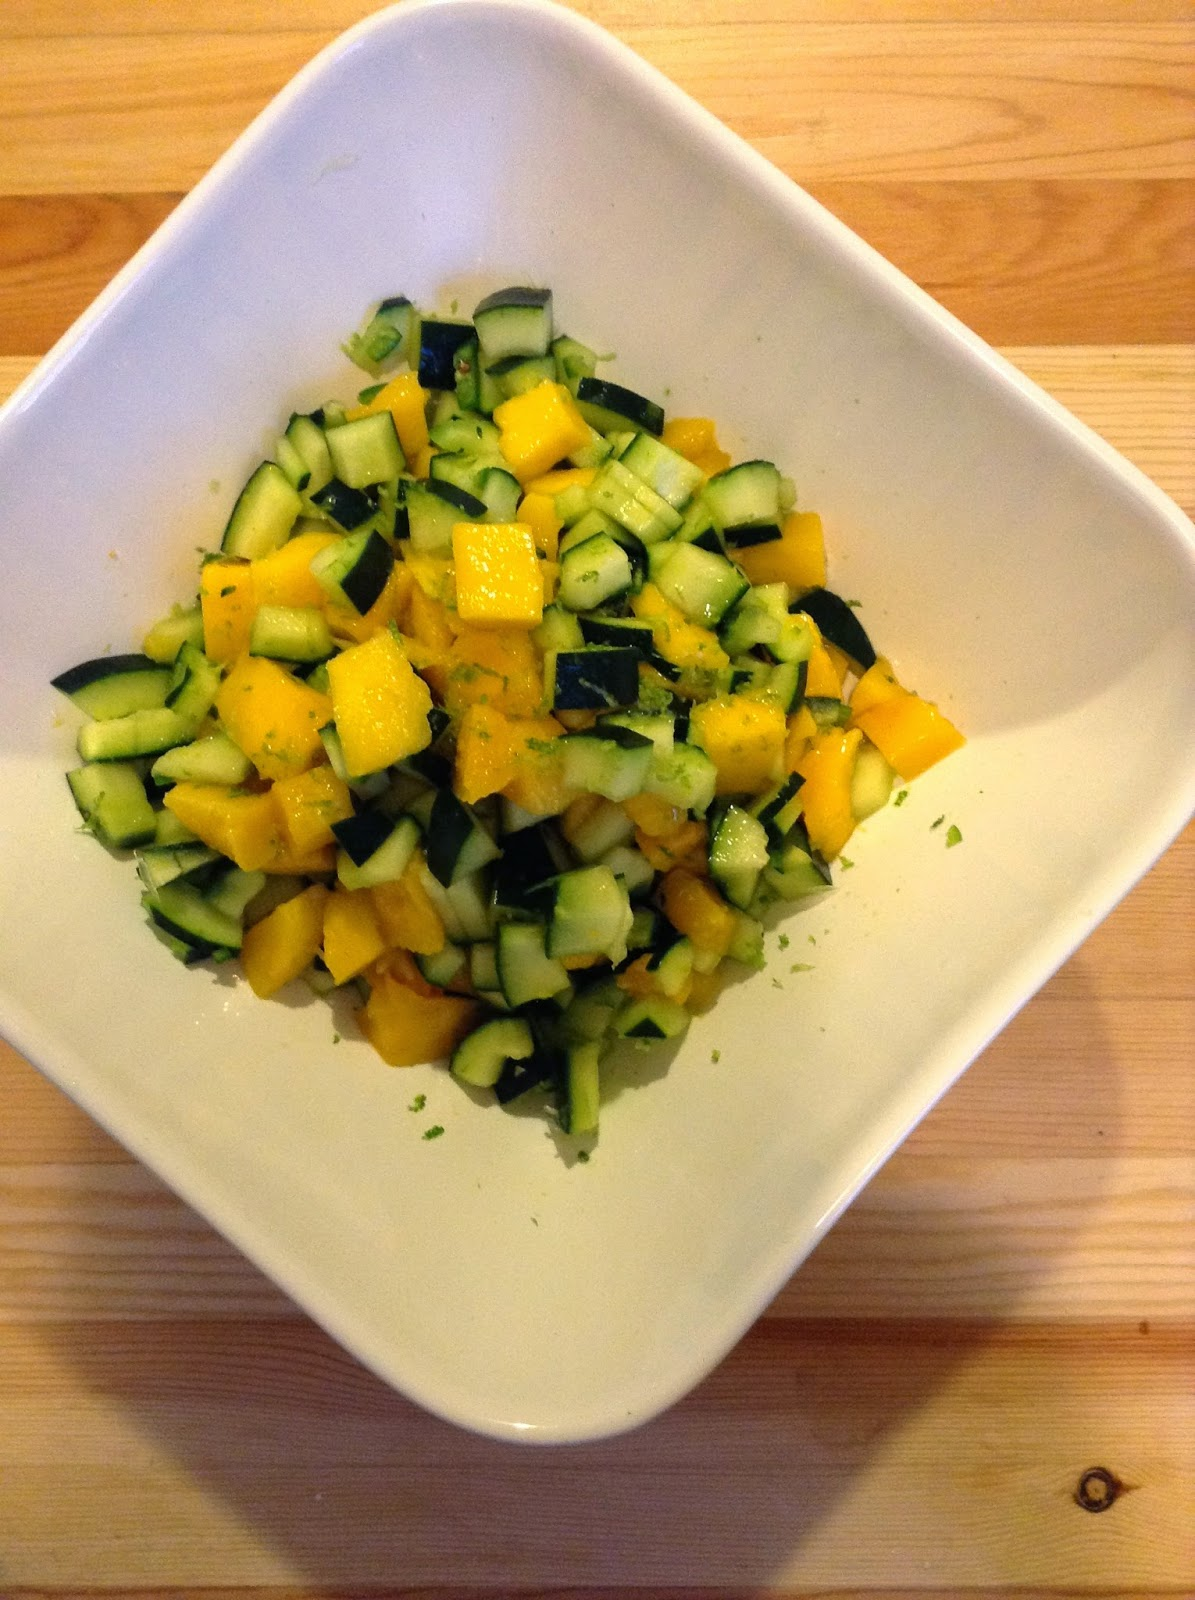 Diced mango, diced cucumber, diced jalapeno pepper mixed together and dressed with lime juice and zest